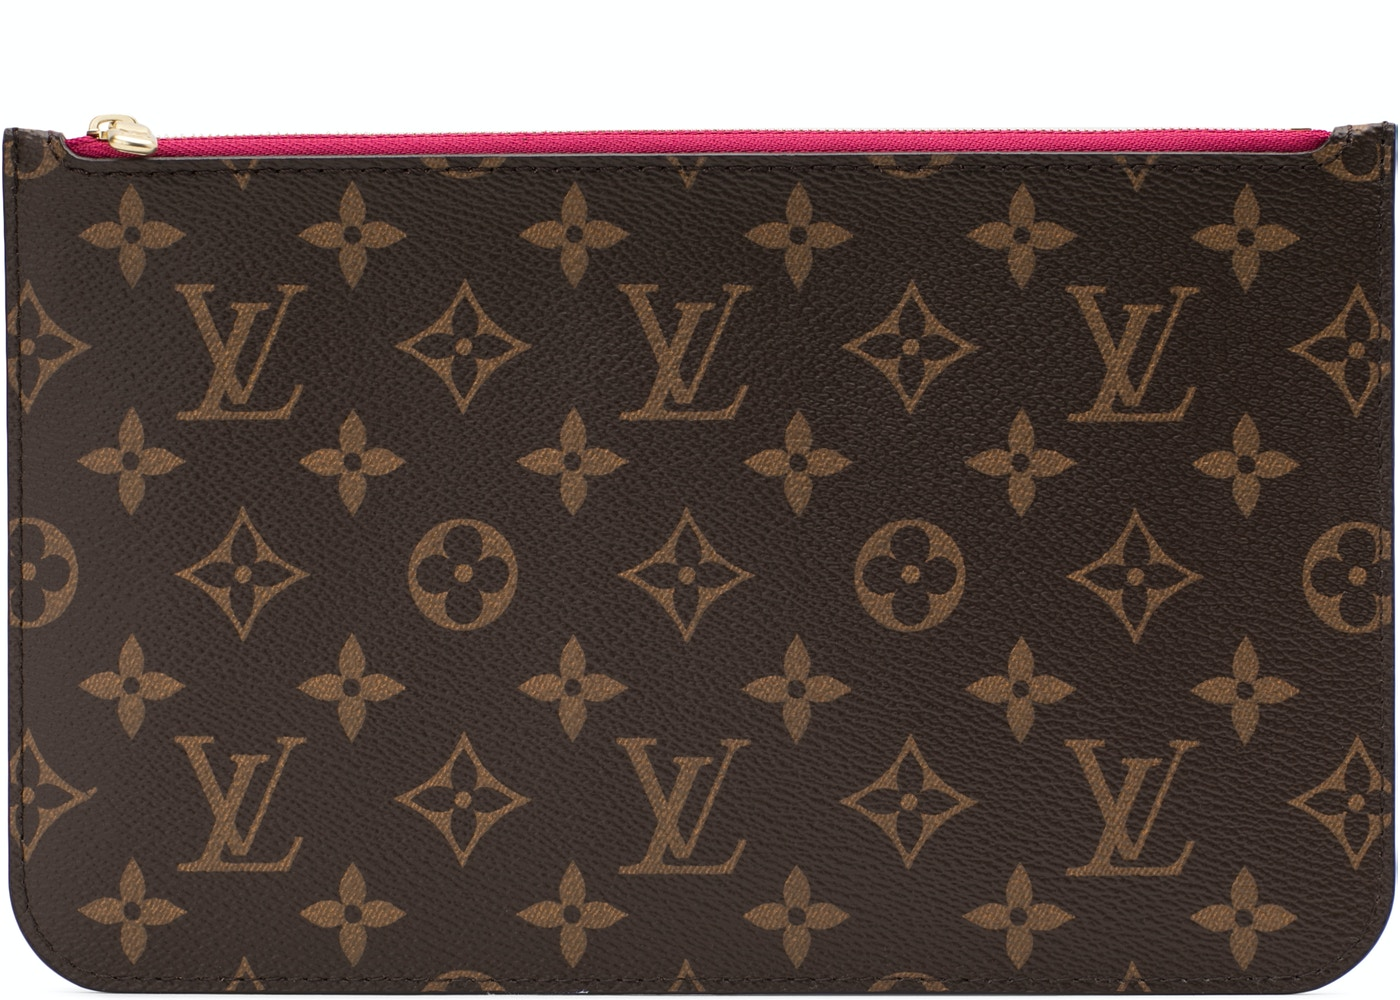 52791db7046c Louis Vuitton Neverfull Pochette Monogram Brown Pivoine. Monogram Brown  Pivoine